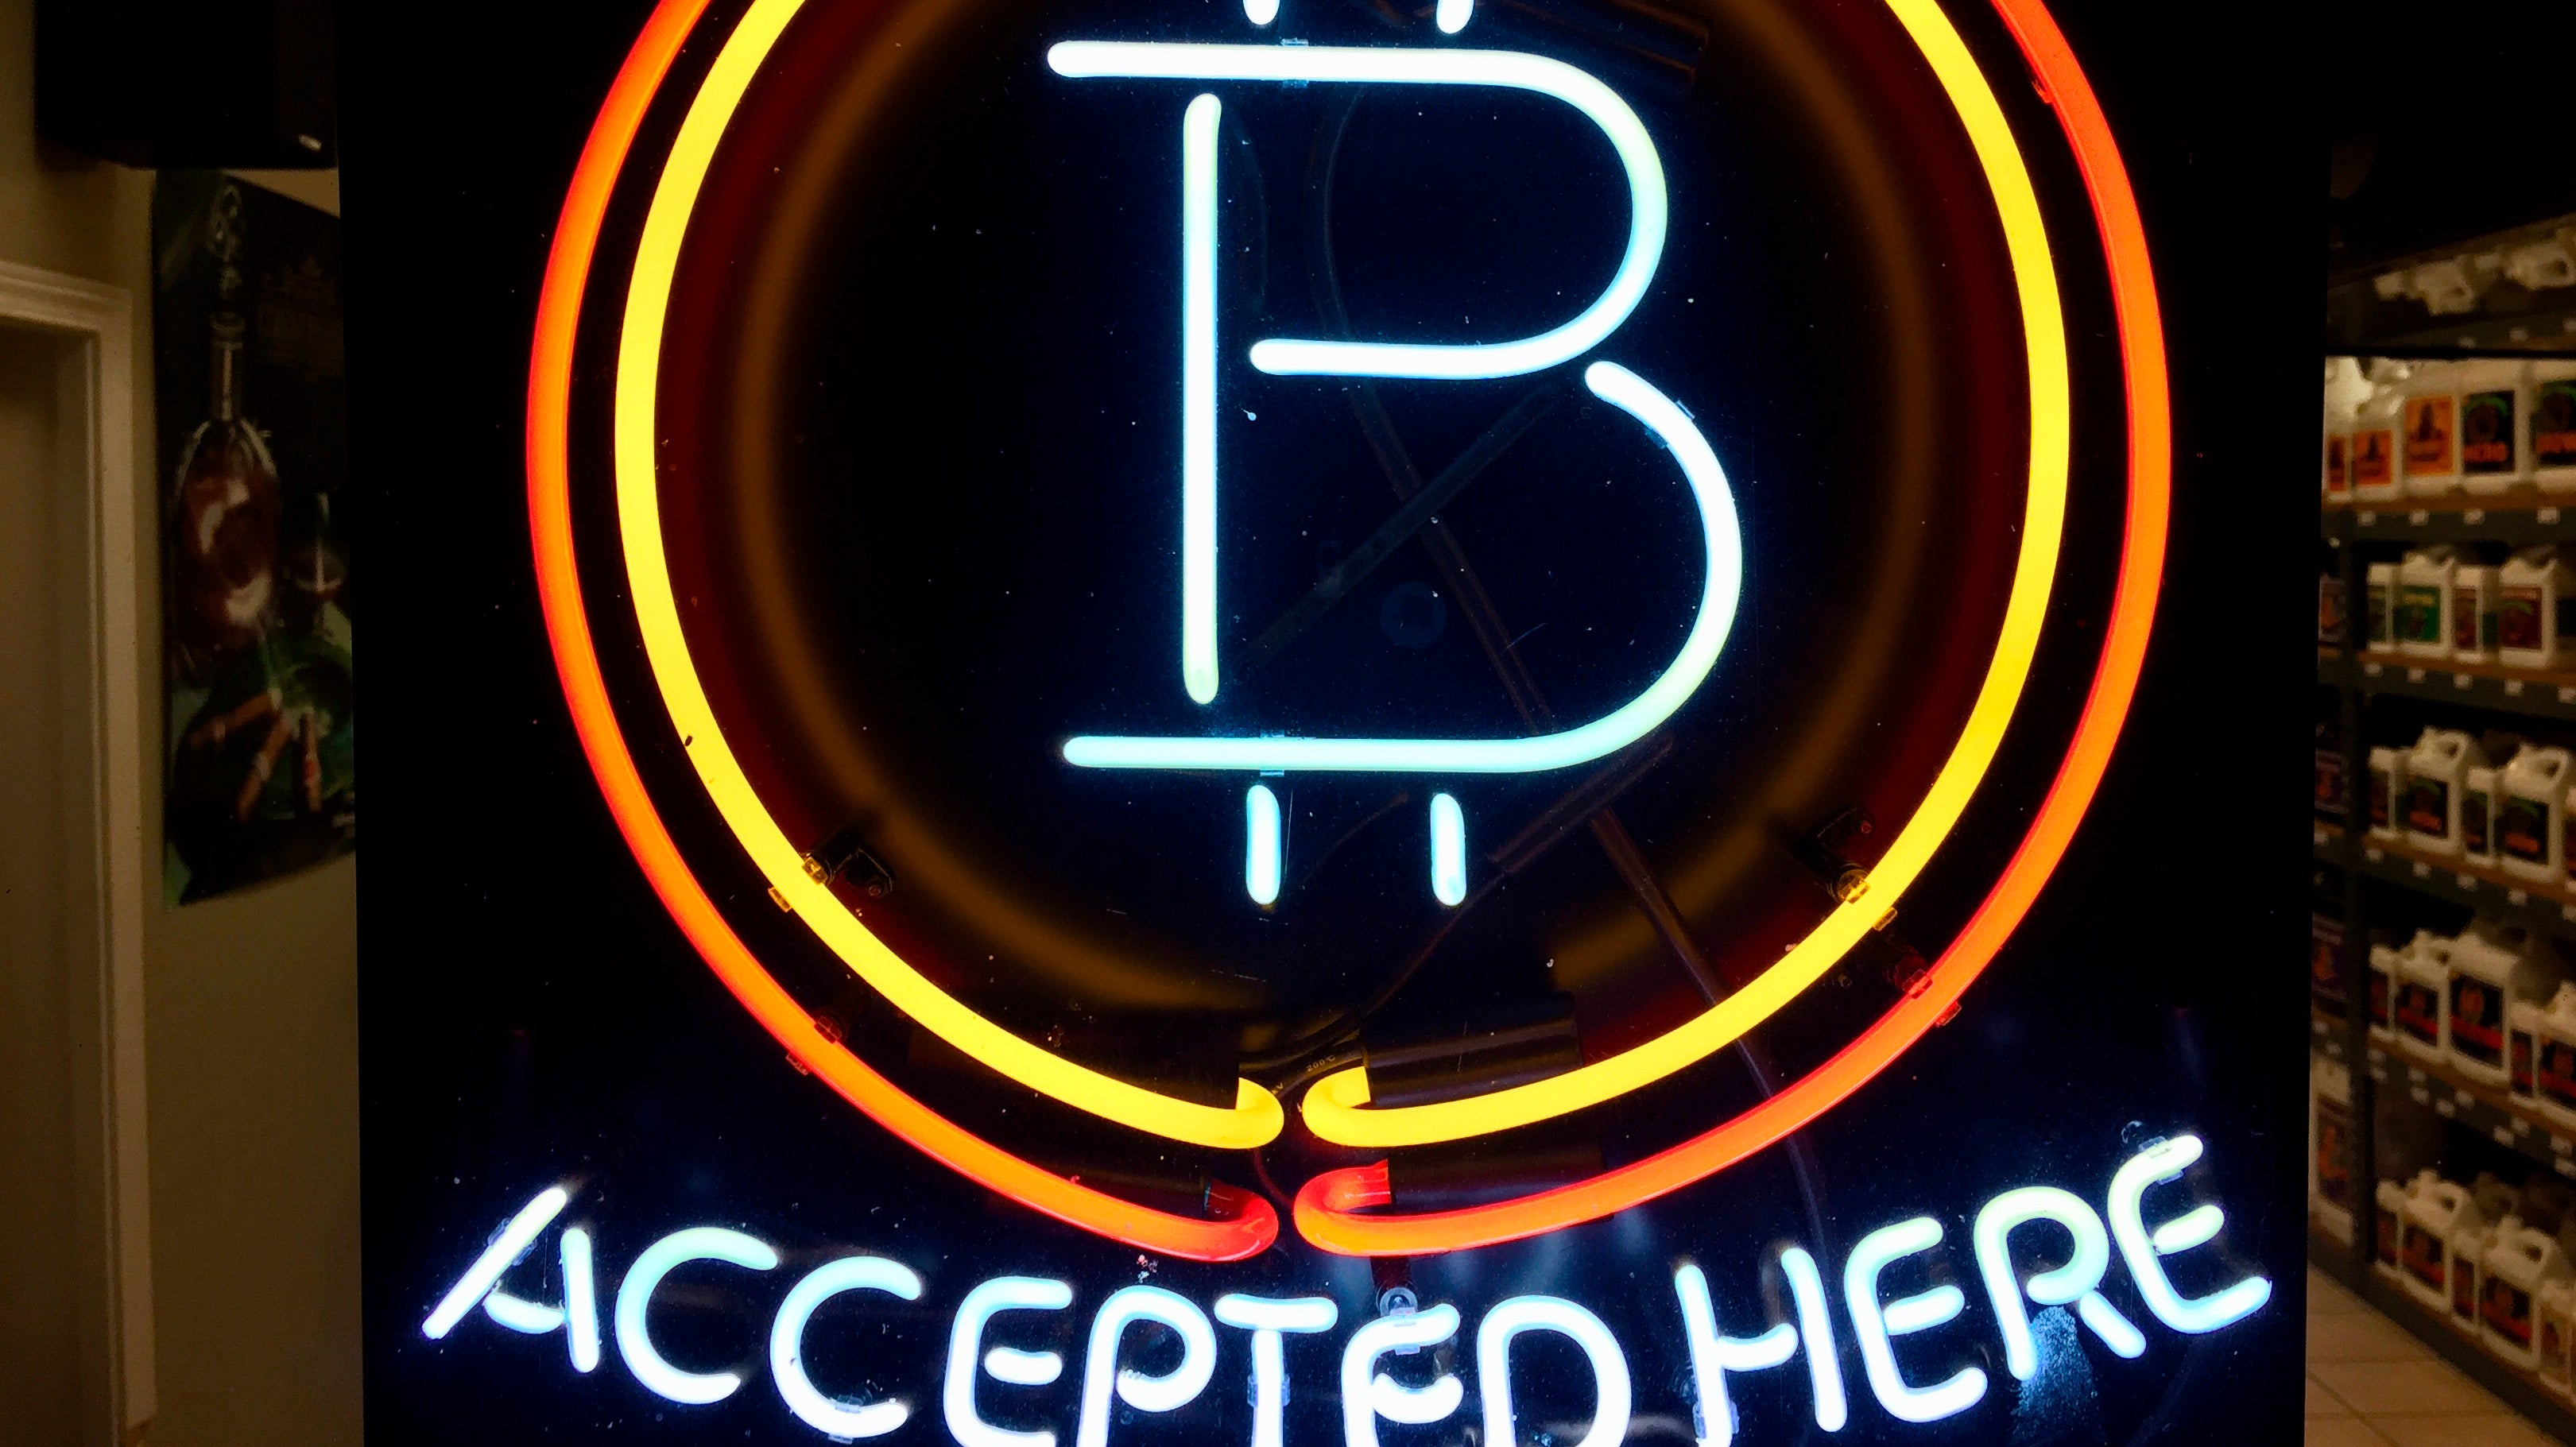 Report: Just Two Groups May Be Behind $1 Billion In Cryptocurrency Hacks